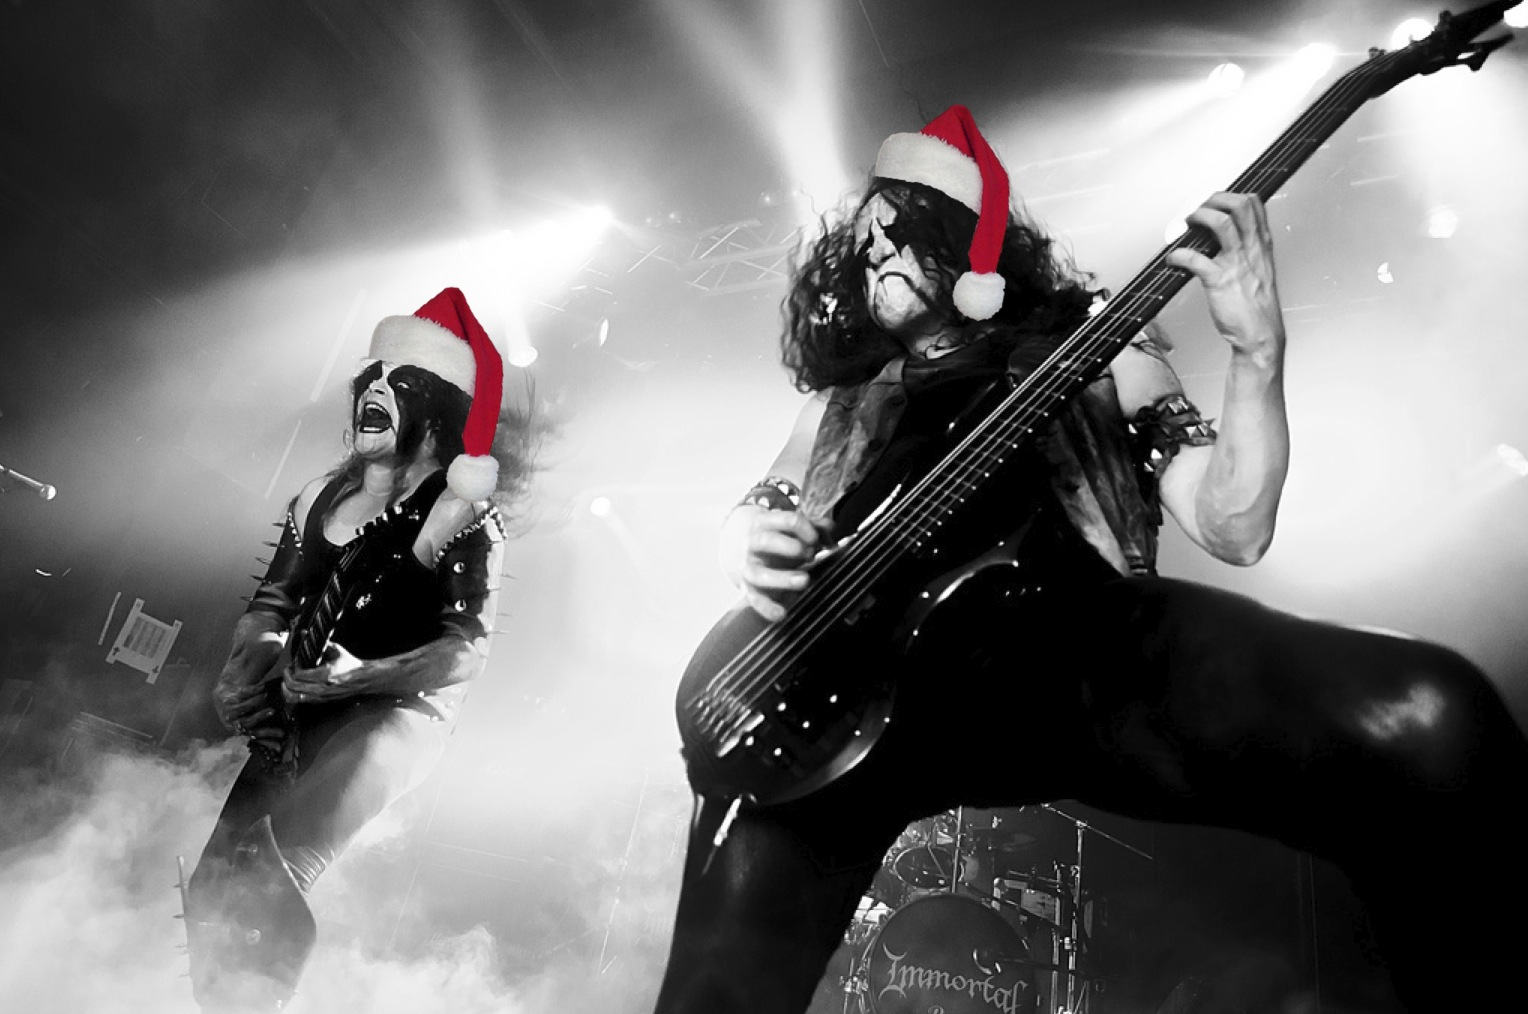 black-metal-christmas.jpg